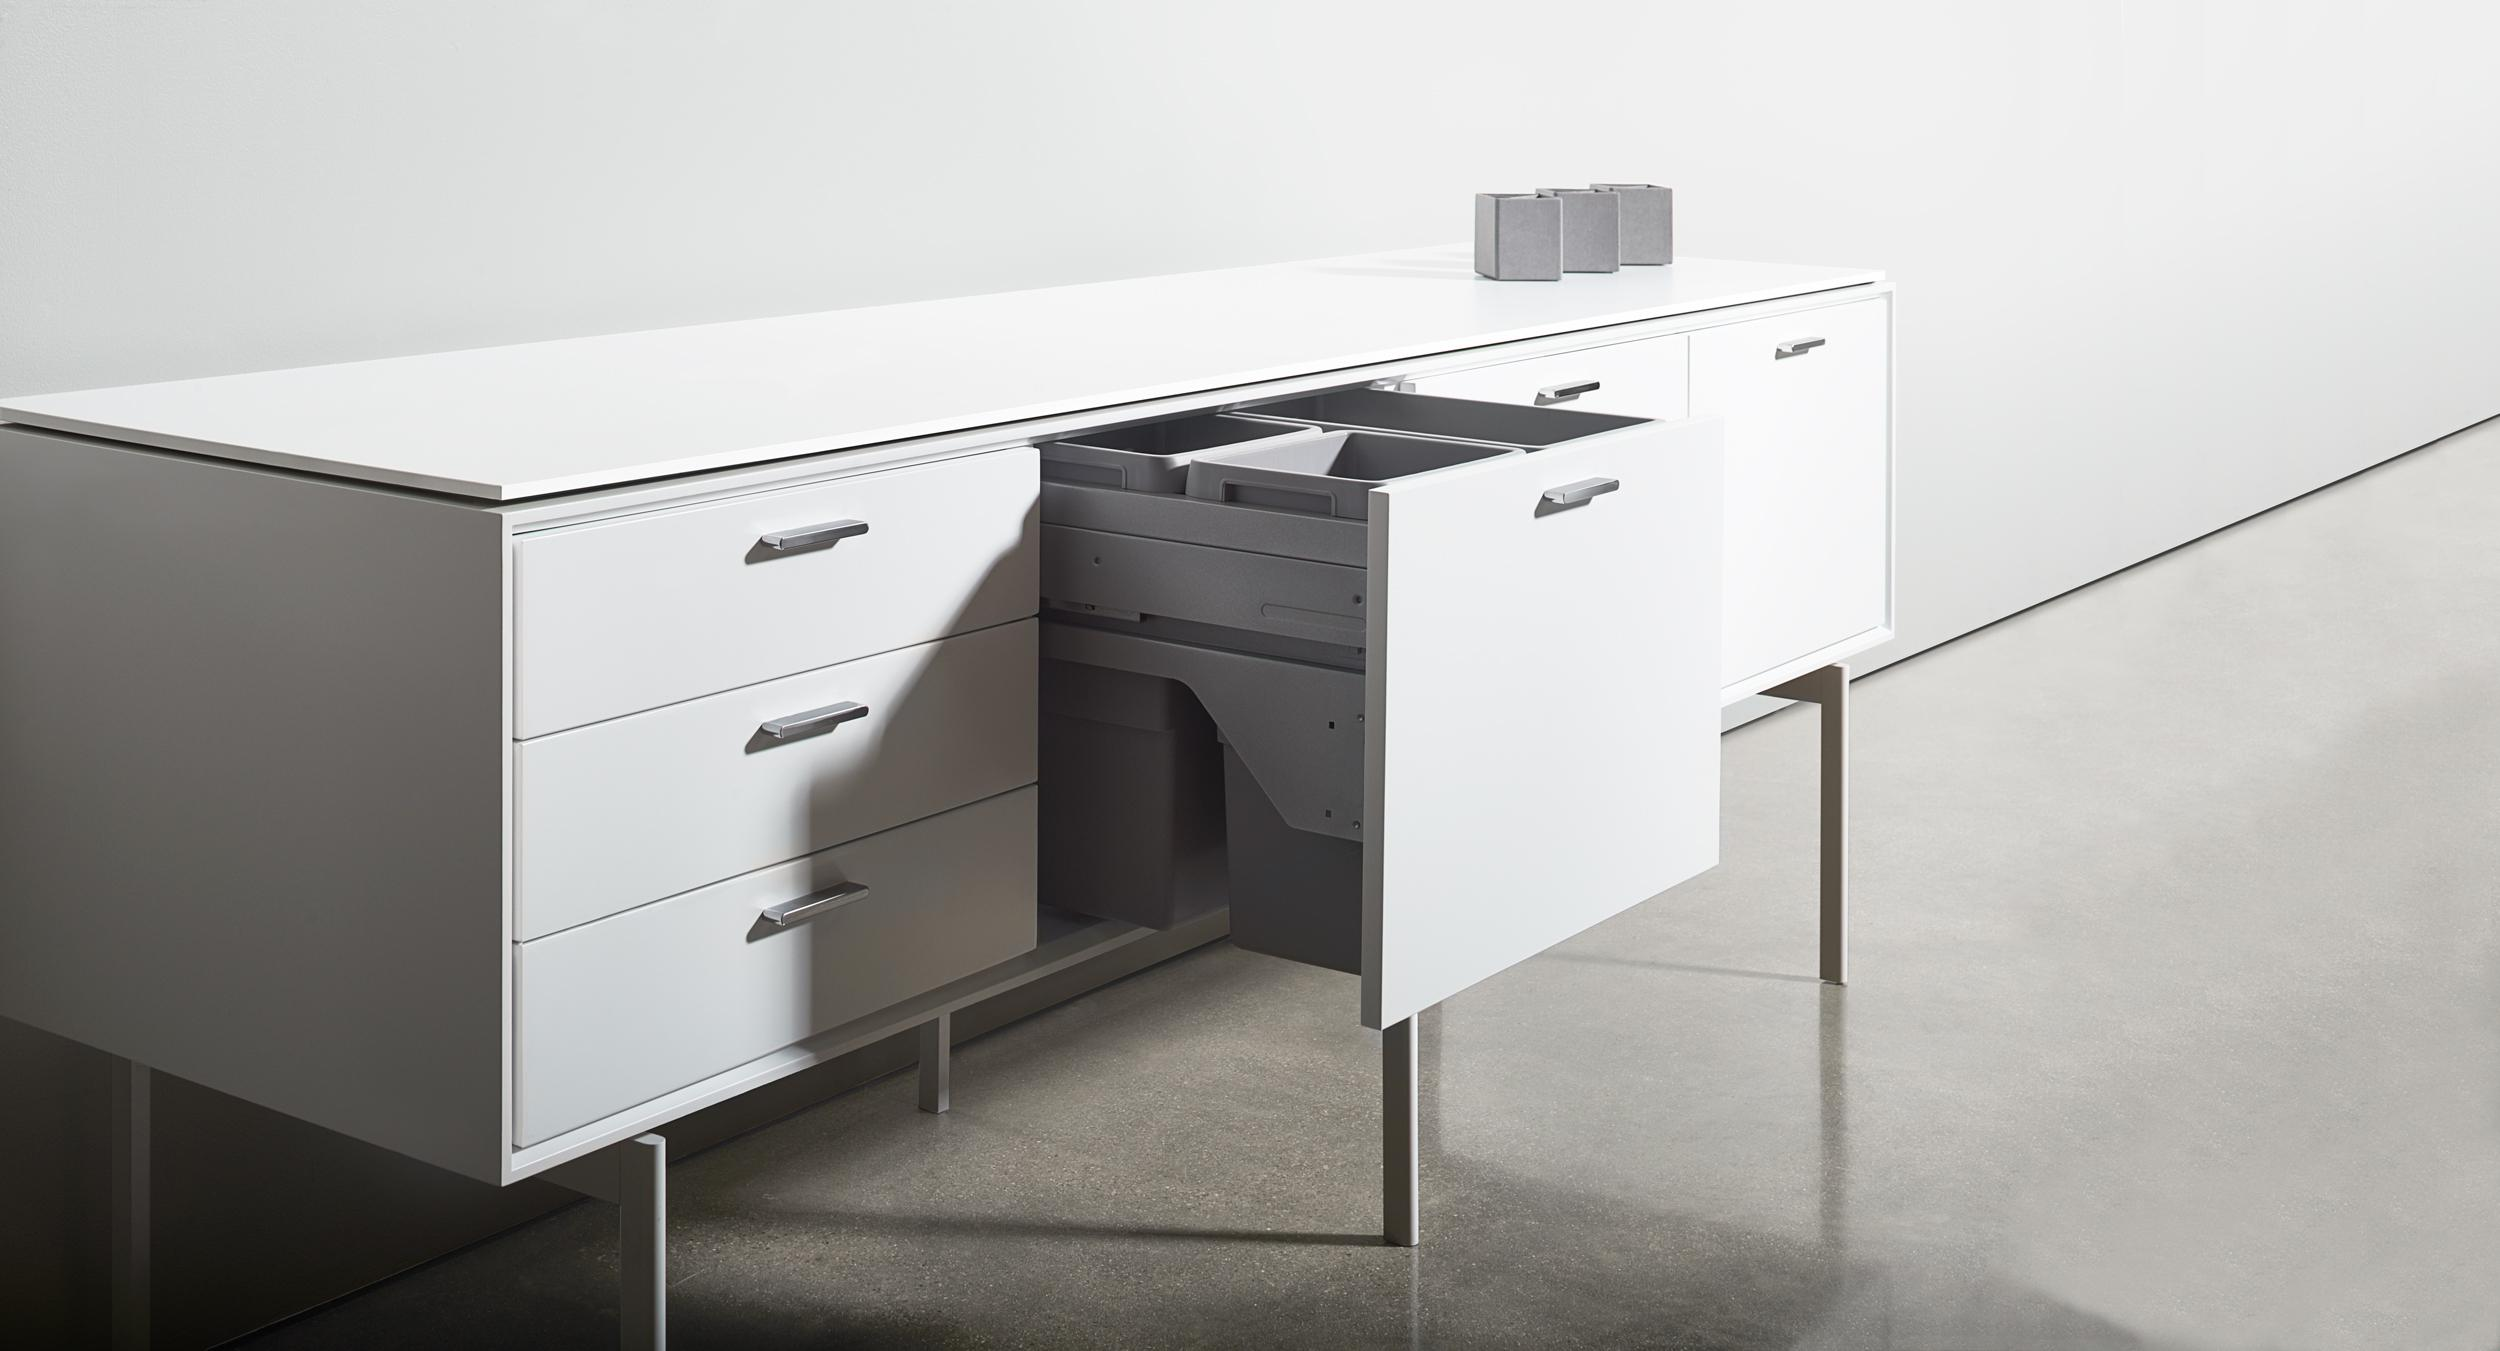 Halo offers a complete range of storage elements including a voluminous triple waste bin in a compact, 24-inch wide module.